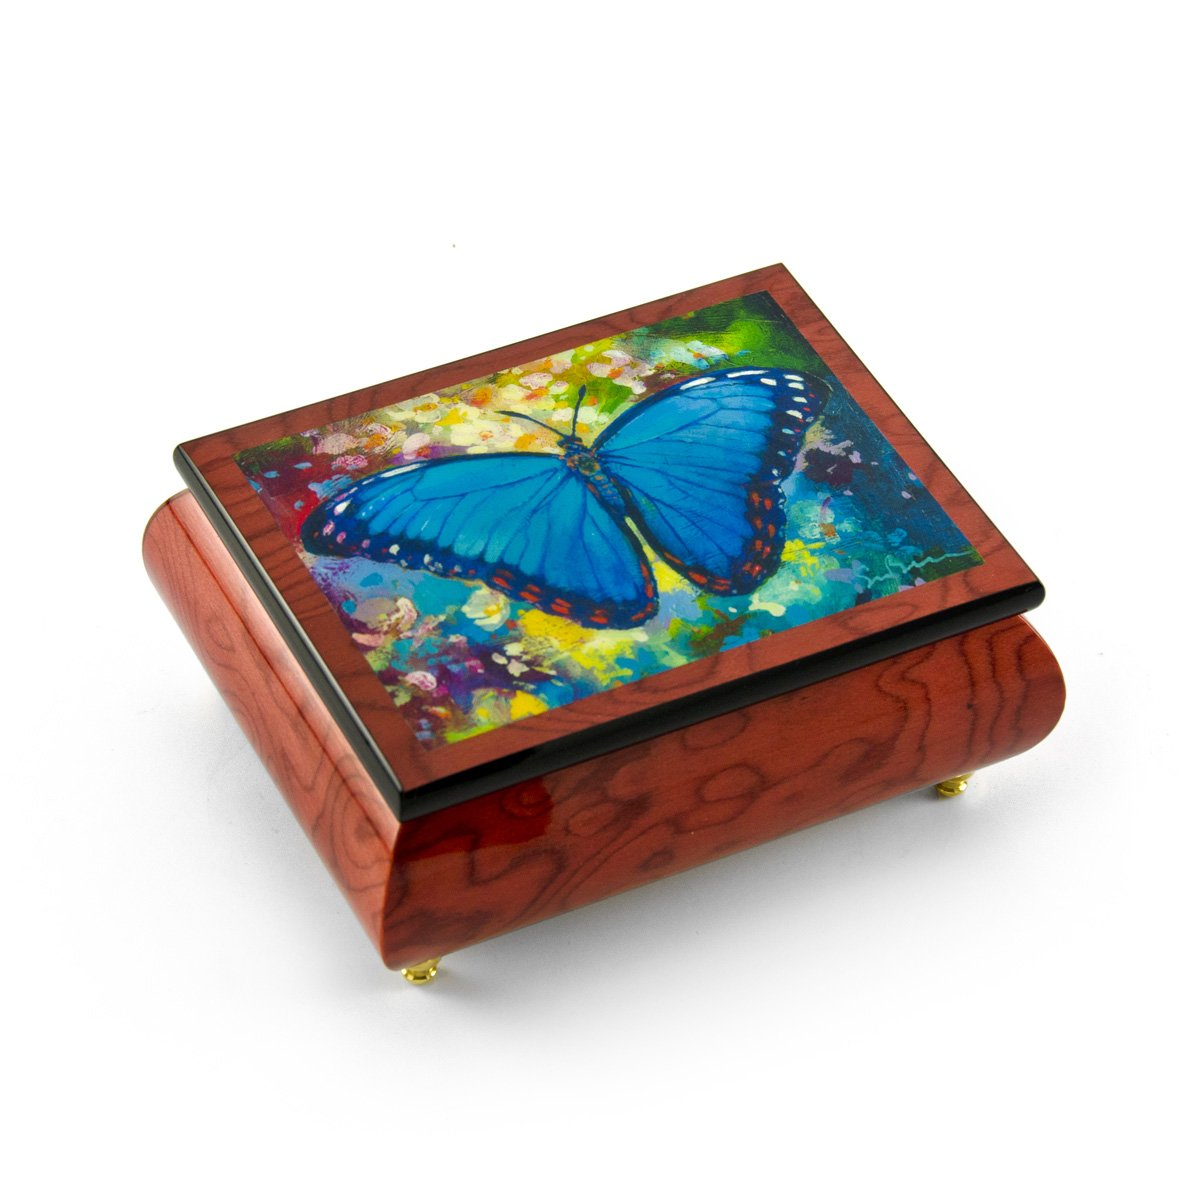 Gorgeous Handcrafted Red-Wine Butterfly Music Box by Ercolano - ''Blue Morpho'' Simon Bull - Talk to the Animals